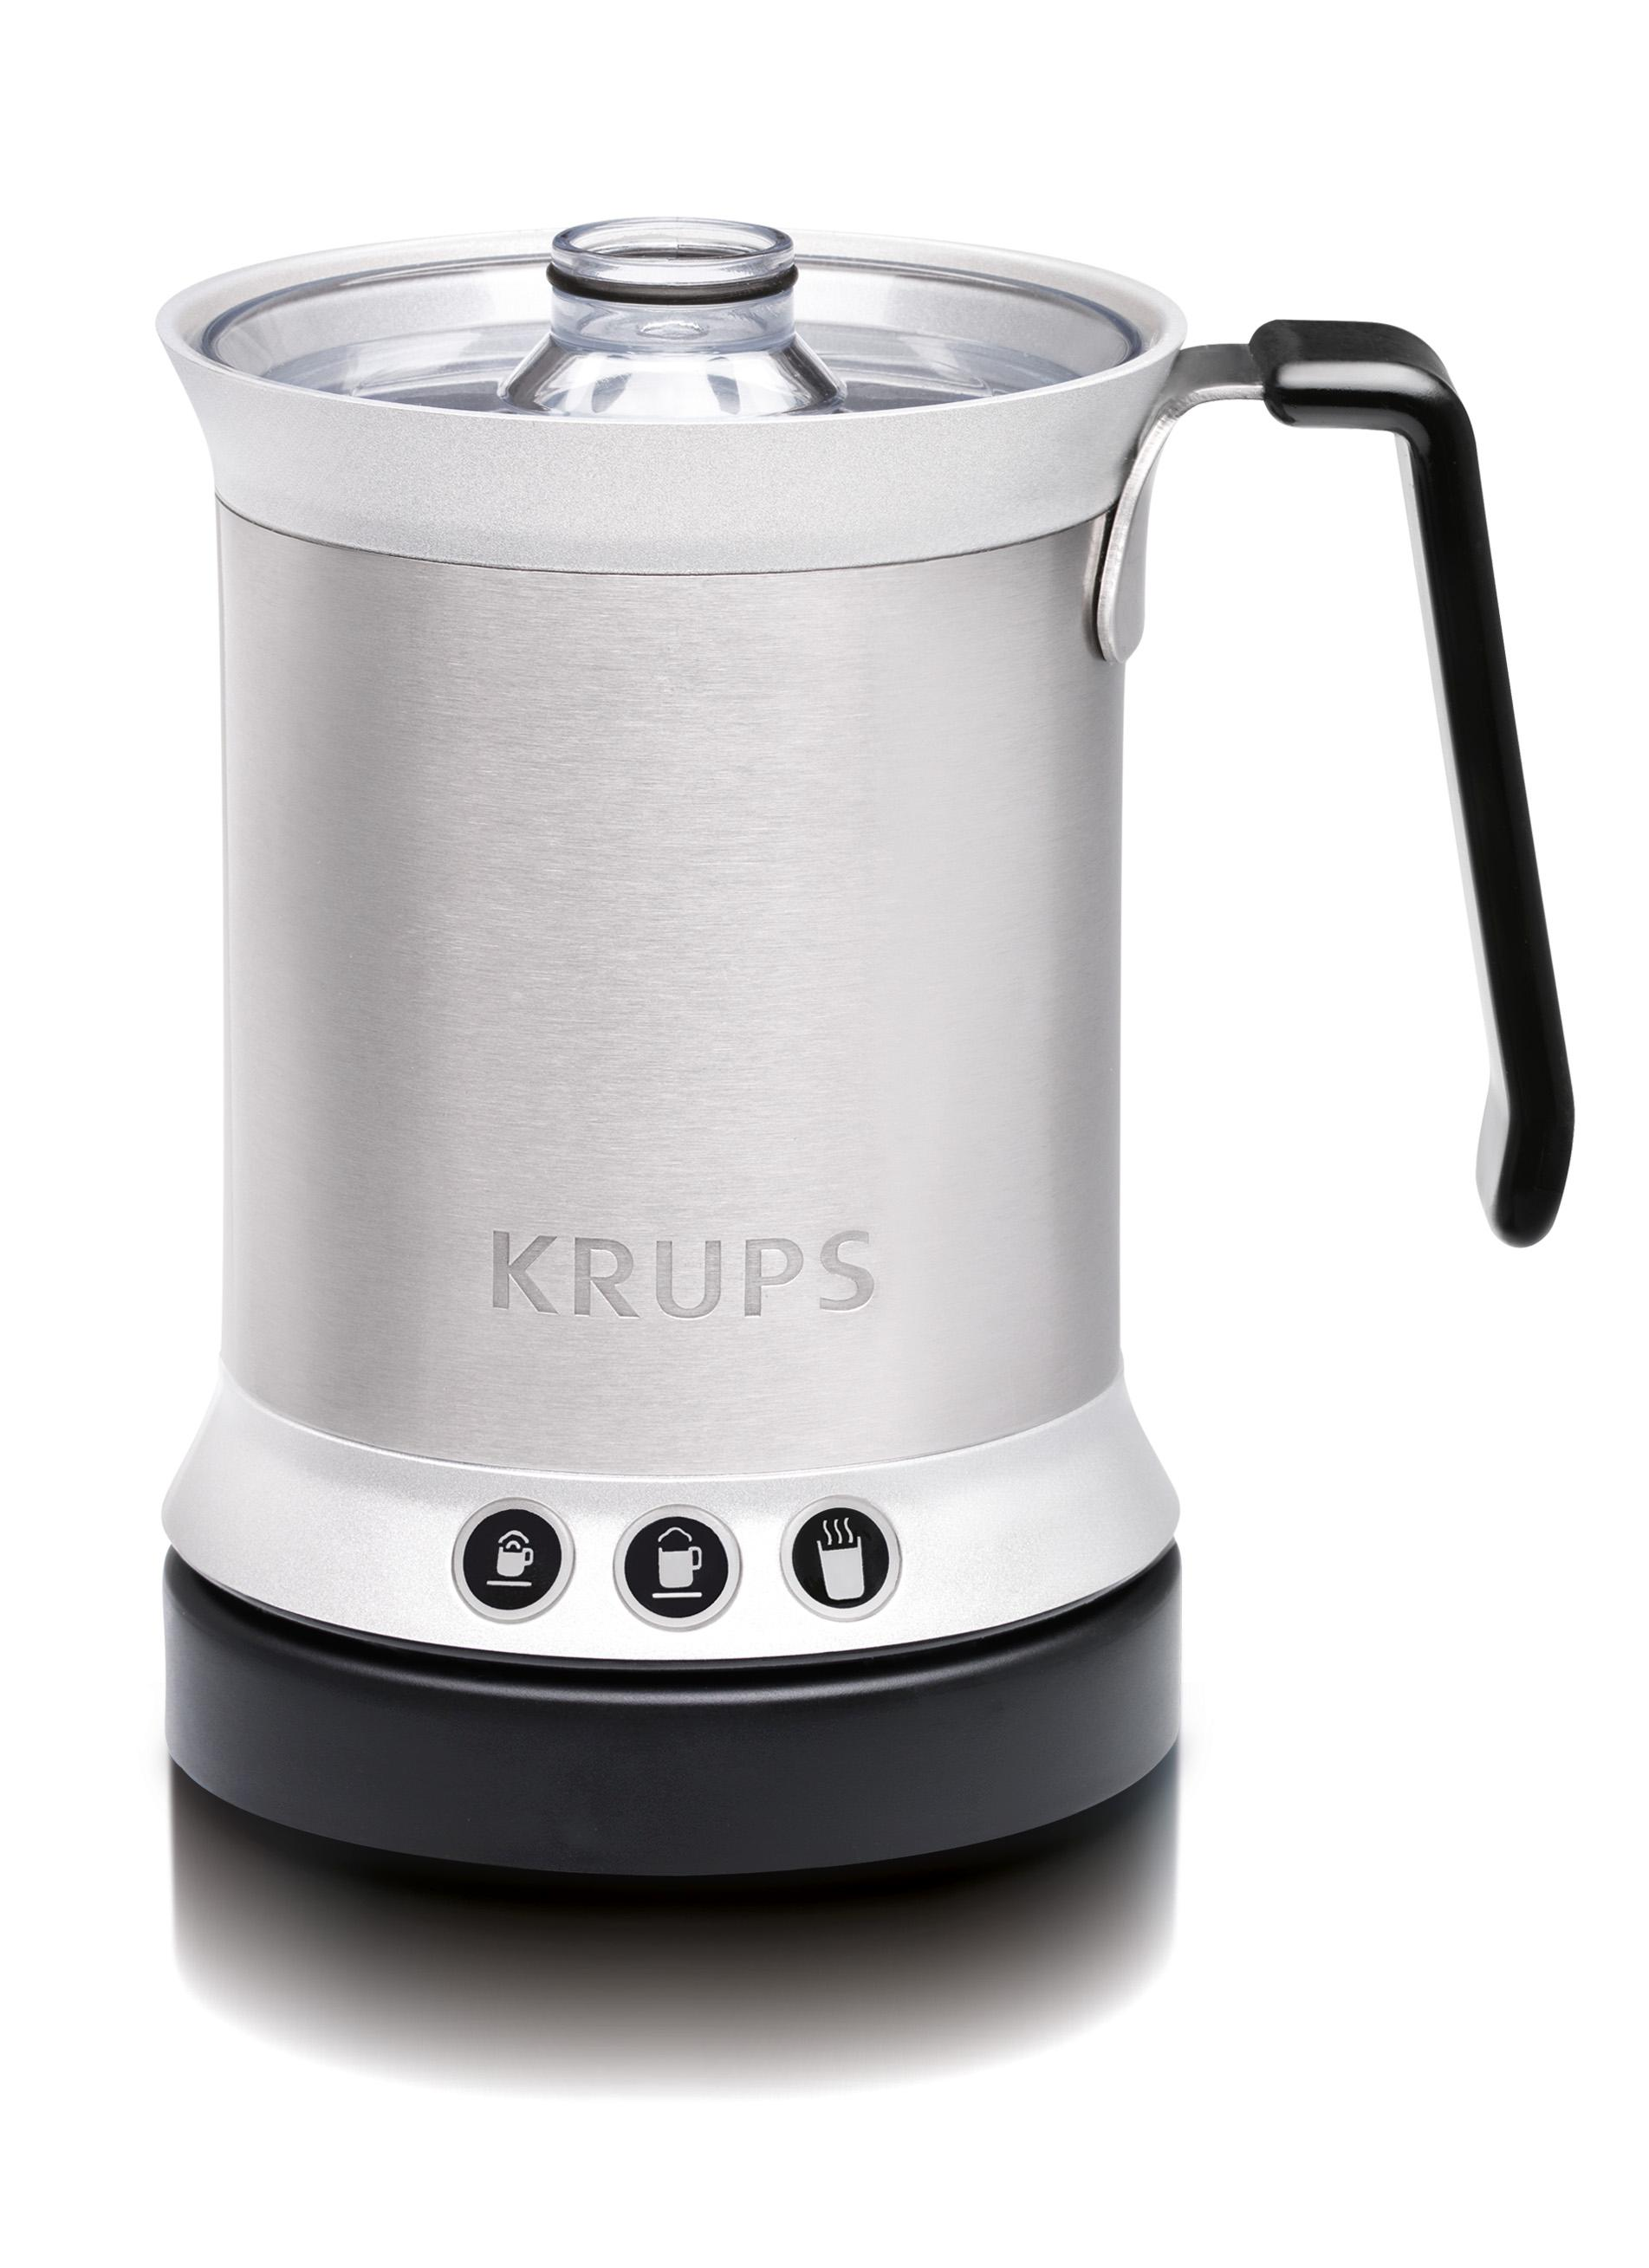 Krups Xl200011 Automatic Milk Frother Amazon Ca Home